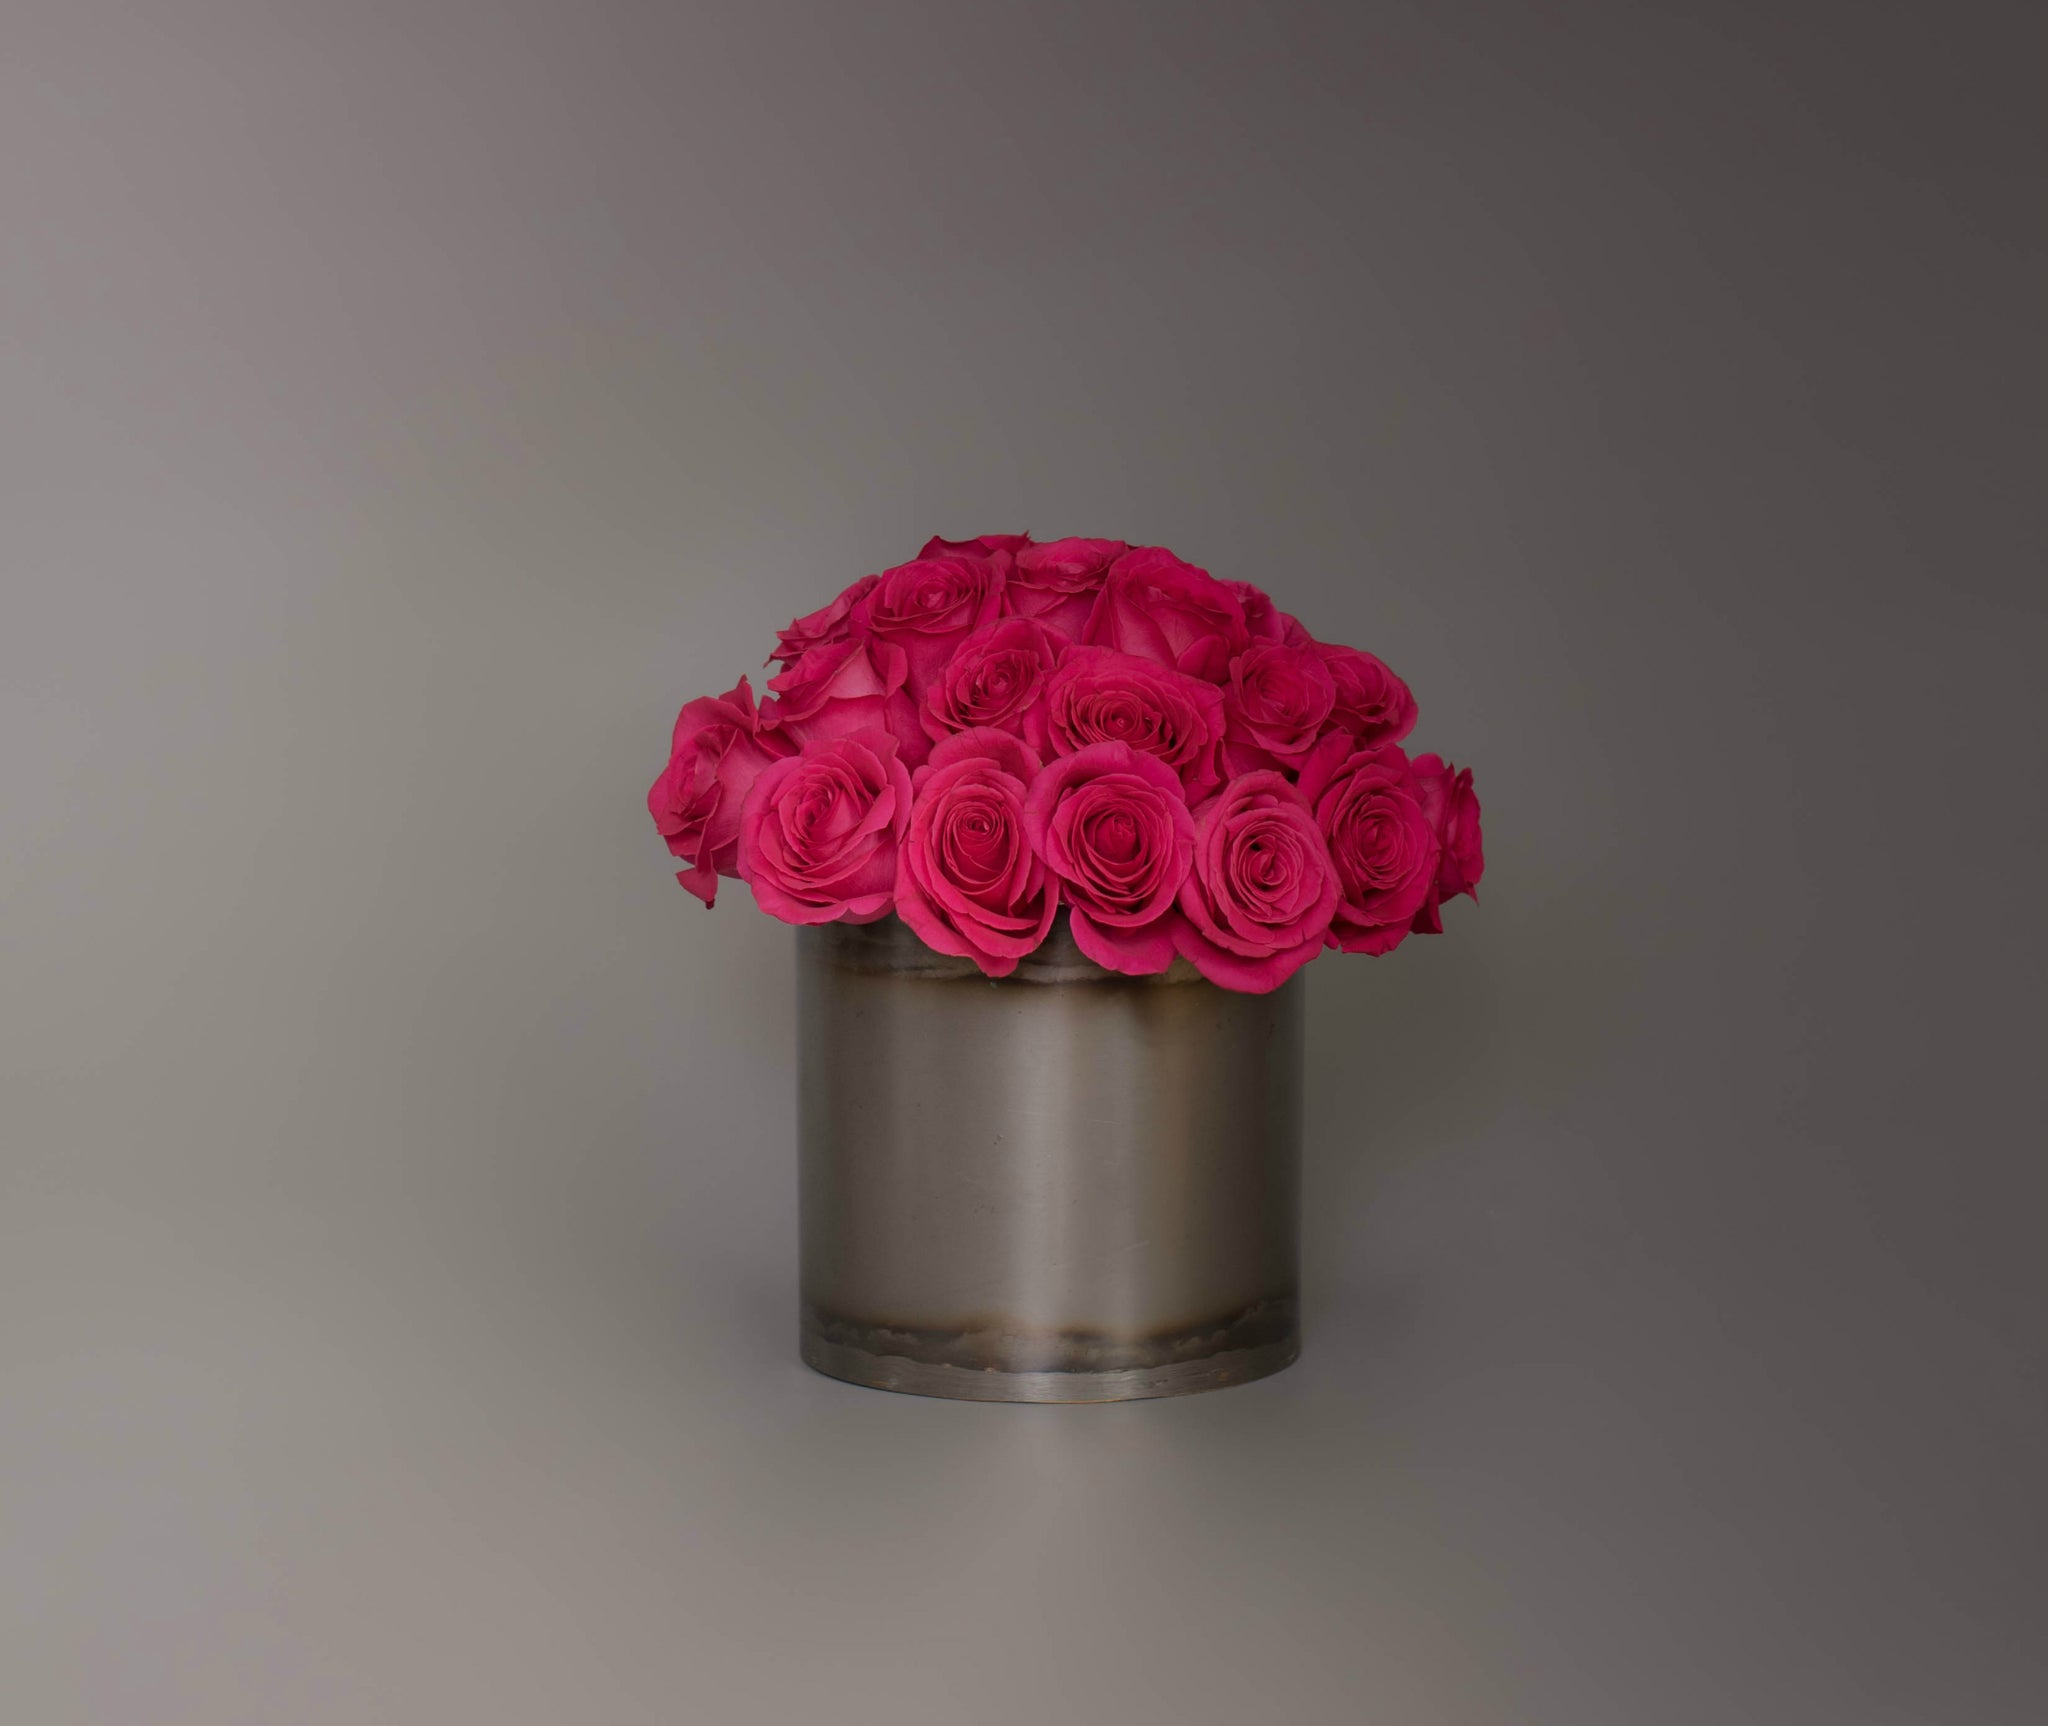 Lush Rose Dome in Oxidized Metal Container